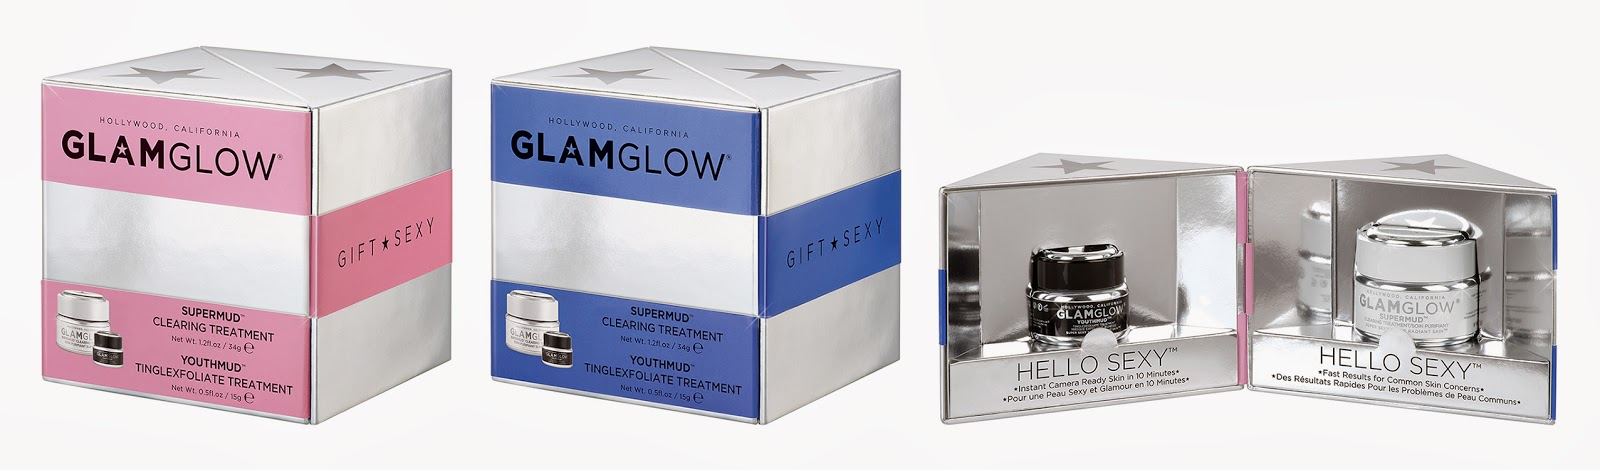 Preview: Reversible GIFT SEXY - Glamglow